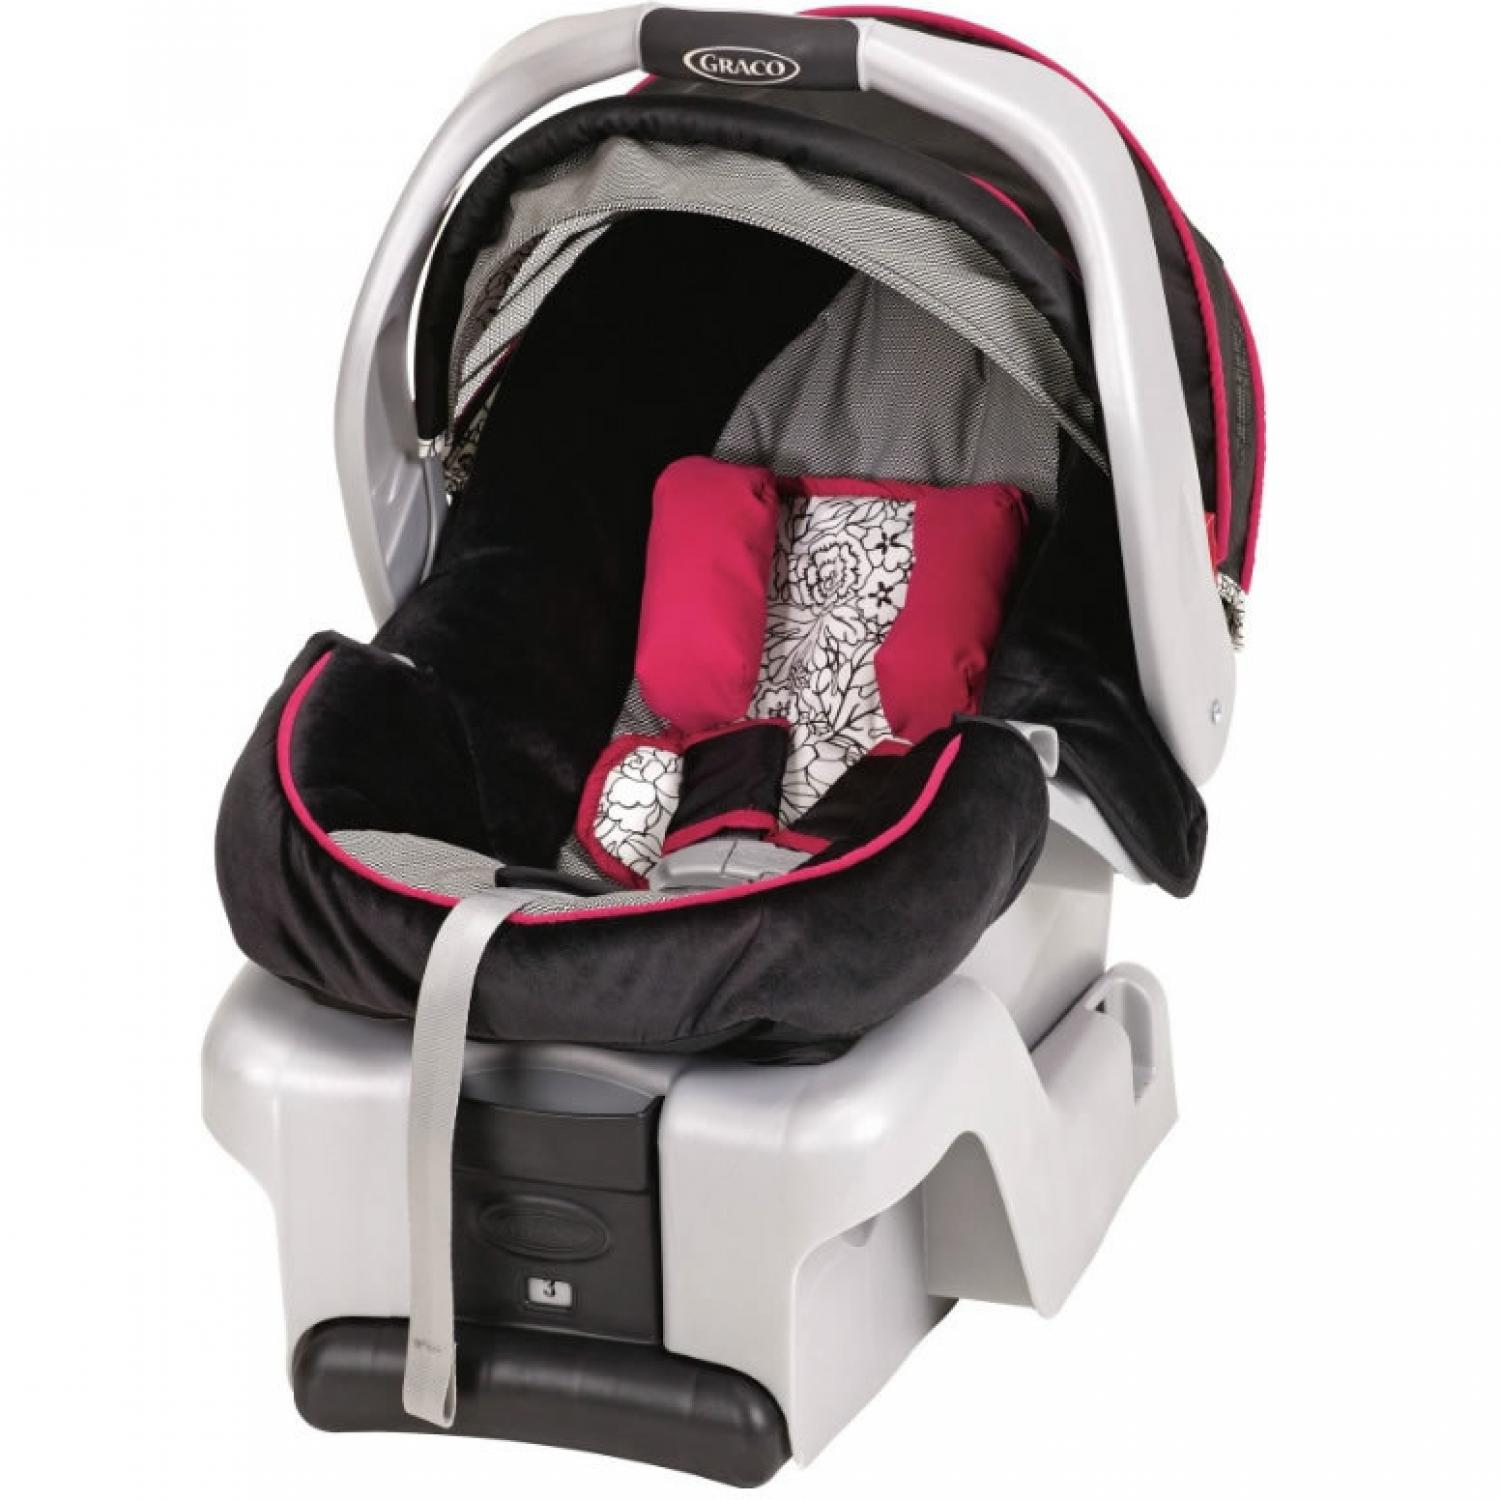 Graco Recalls 1.9 Million Harness Buckles on Car Seats | Parenting